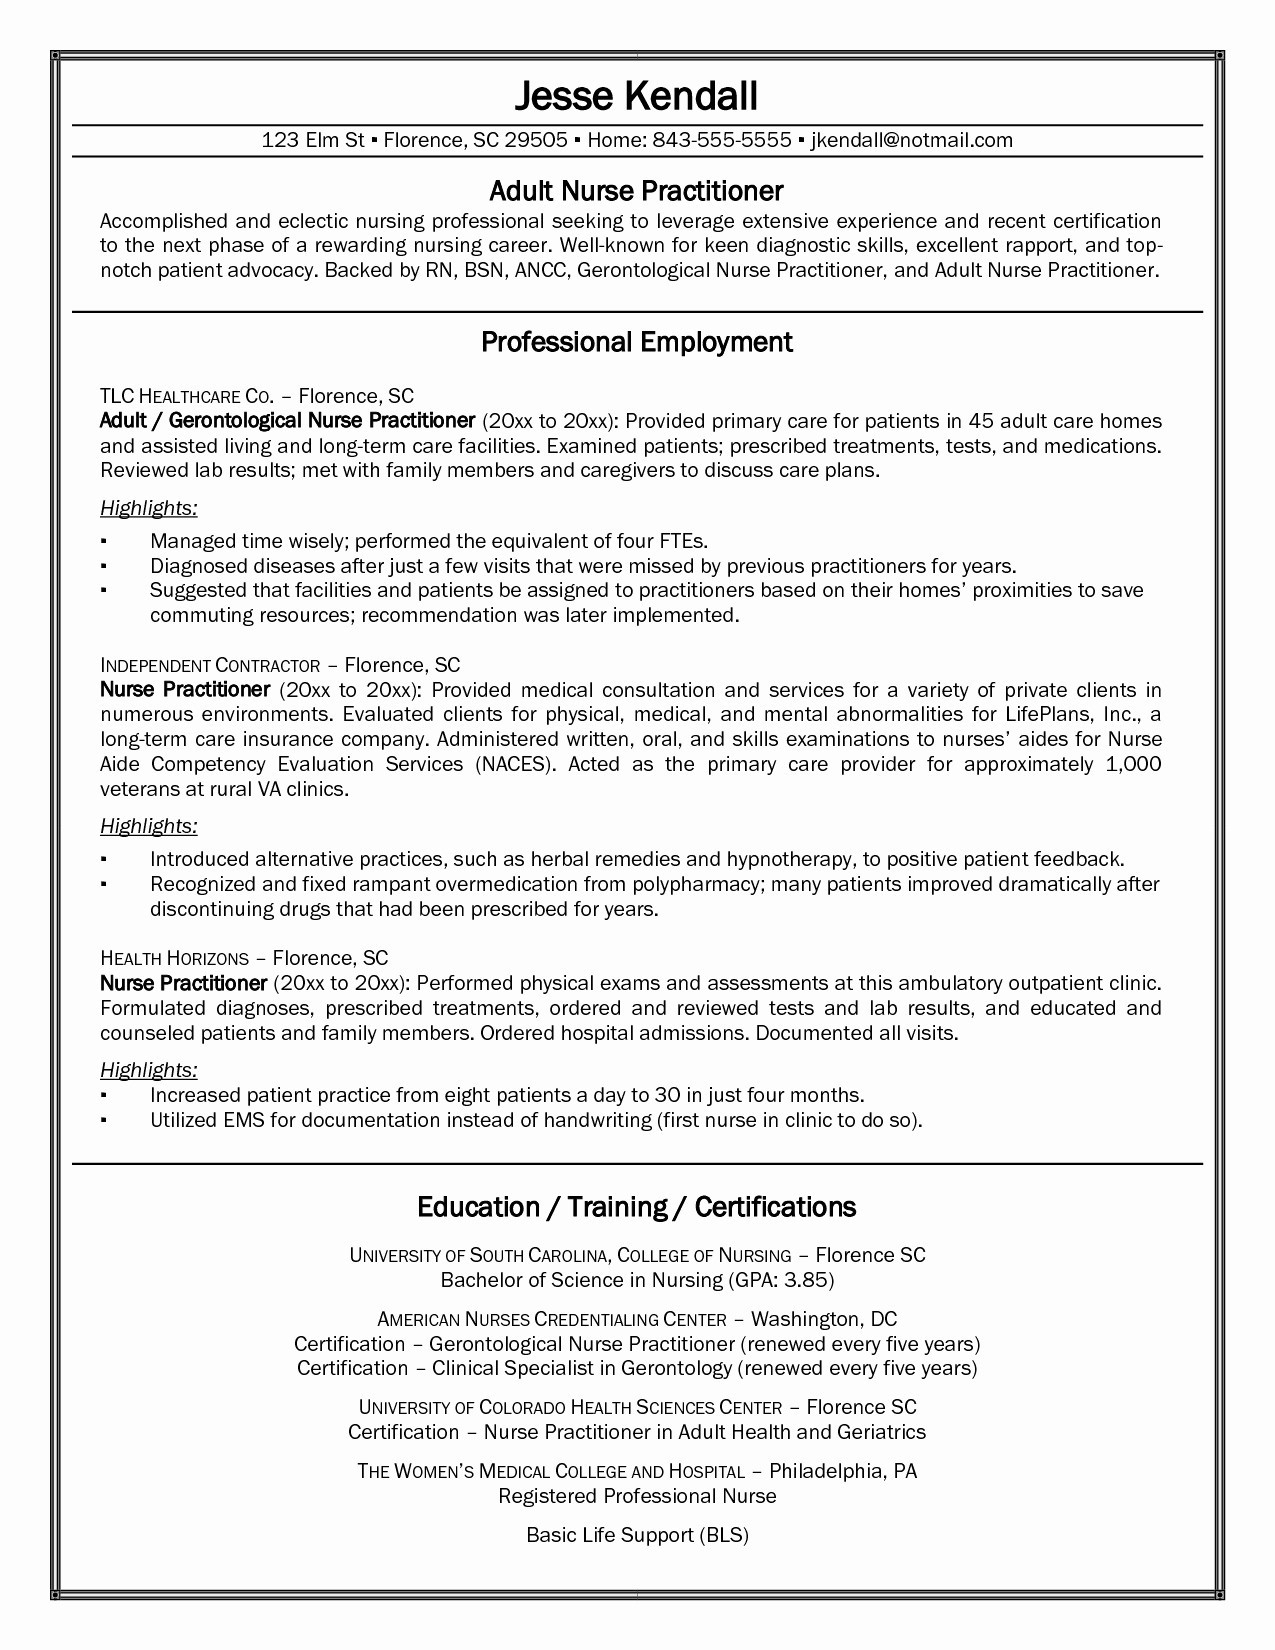 Core Competencies Resume Examples - Professional Nursing Resume Elegant Experienced Rn Resume Fresh